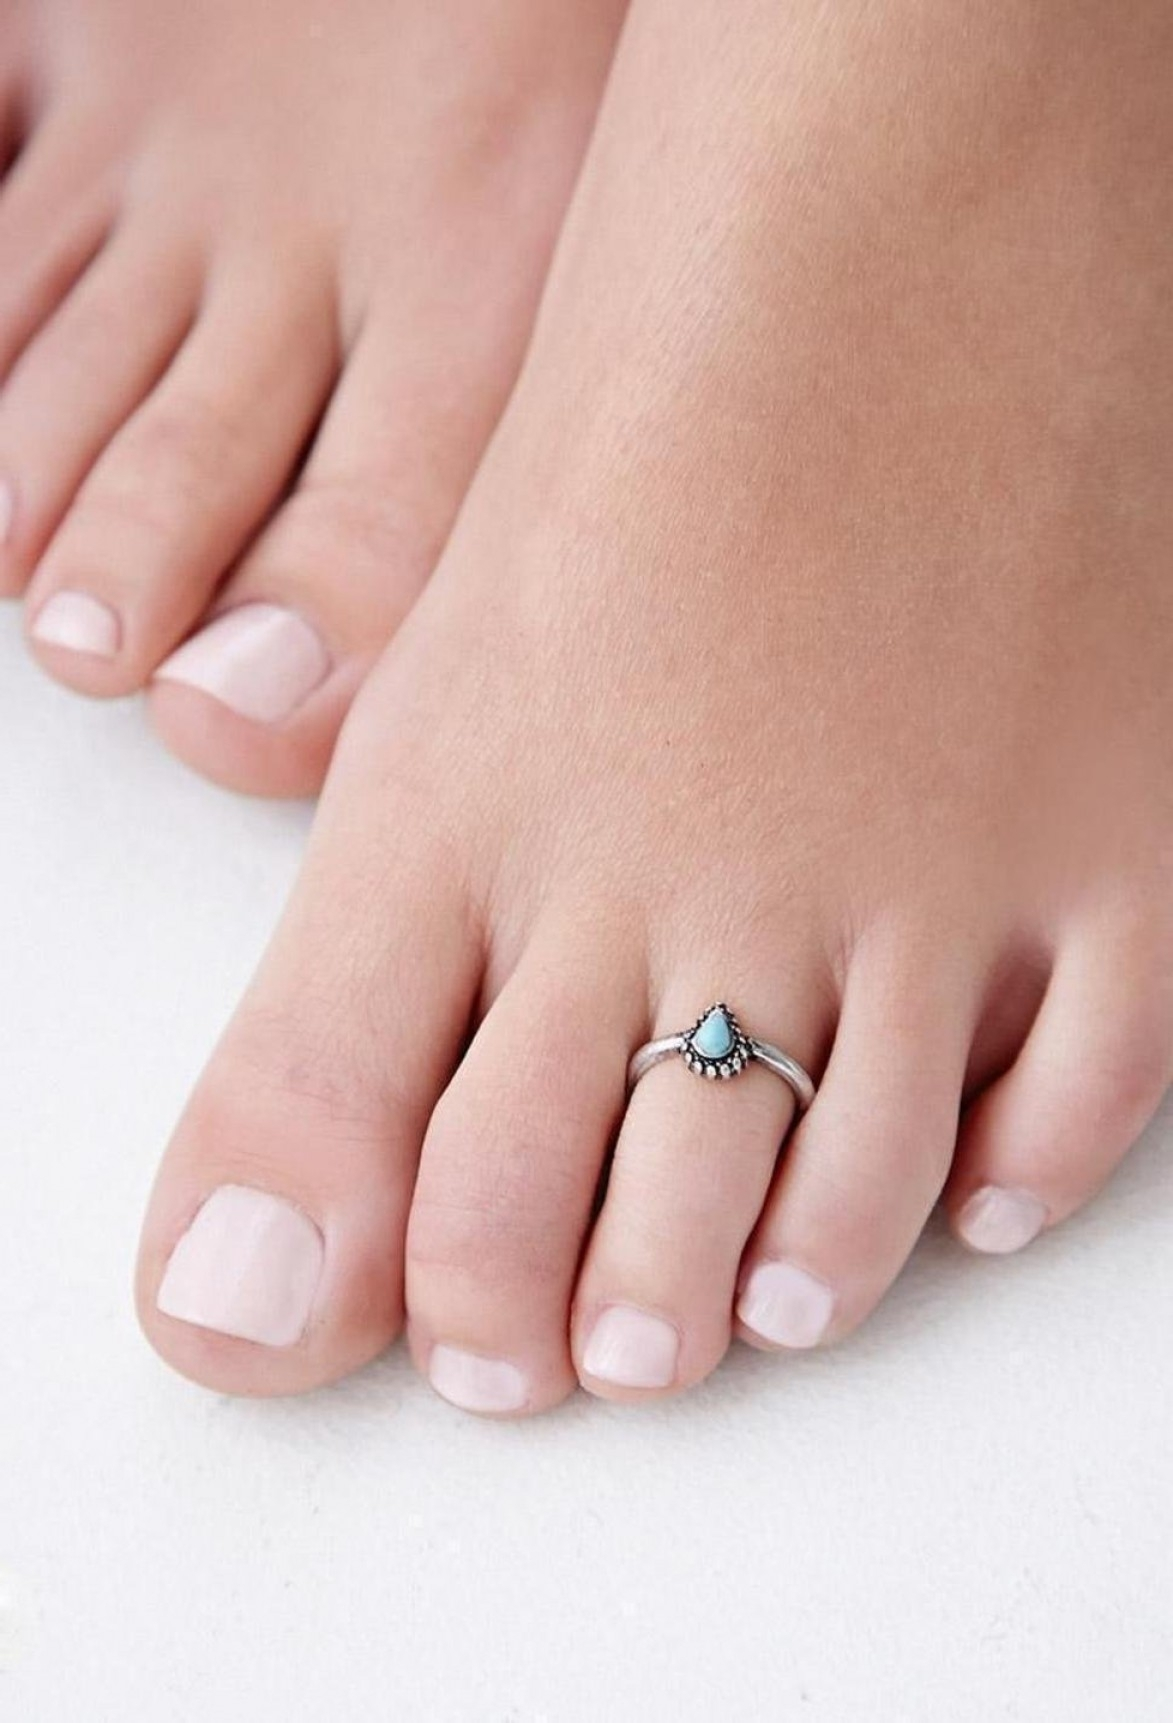 Affordable & Comfortable Toe Rings For Women | Trends4us Within Most Recent Women Toe Rings (View 10 of 15)